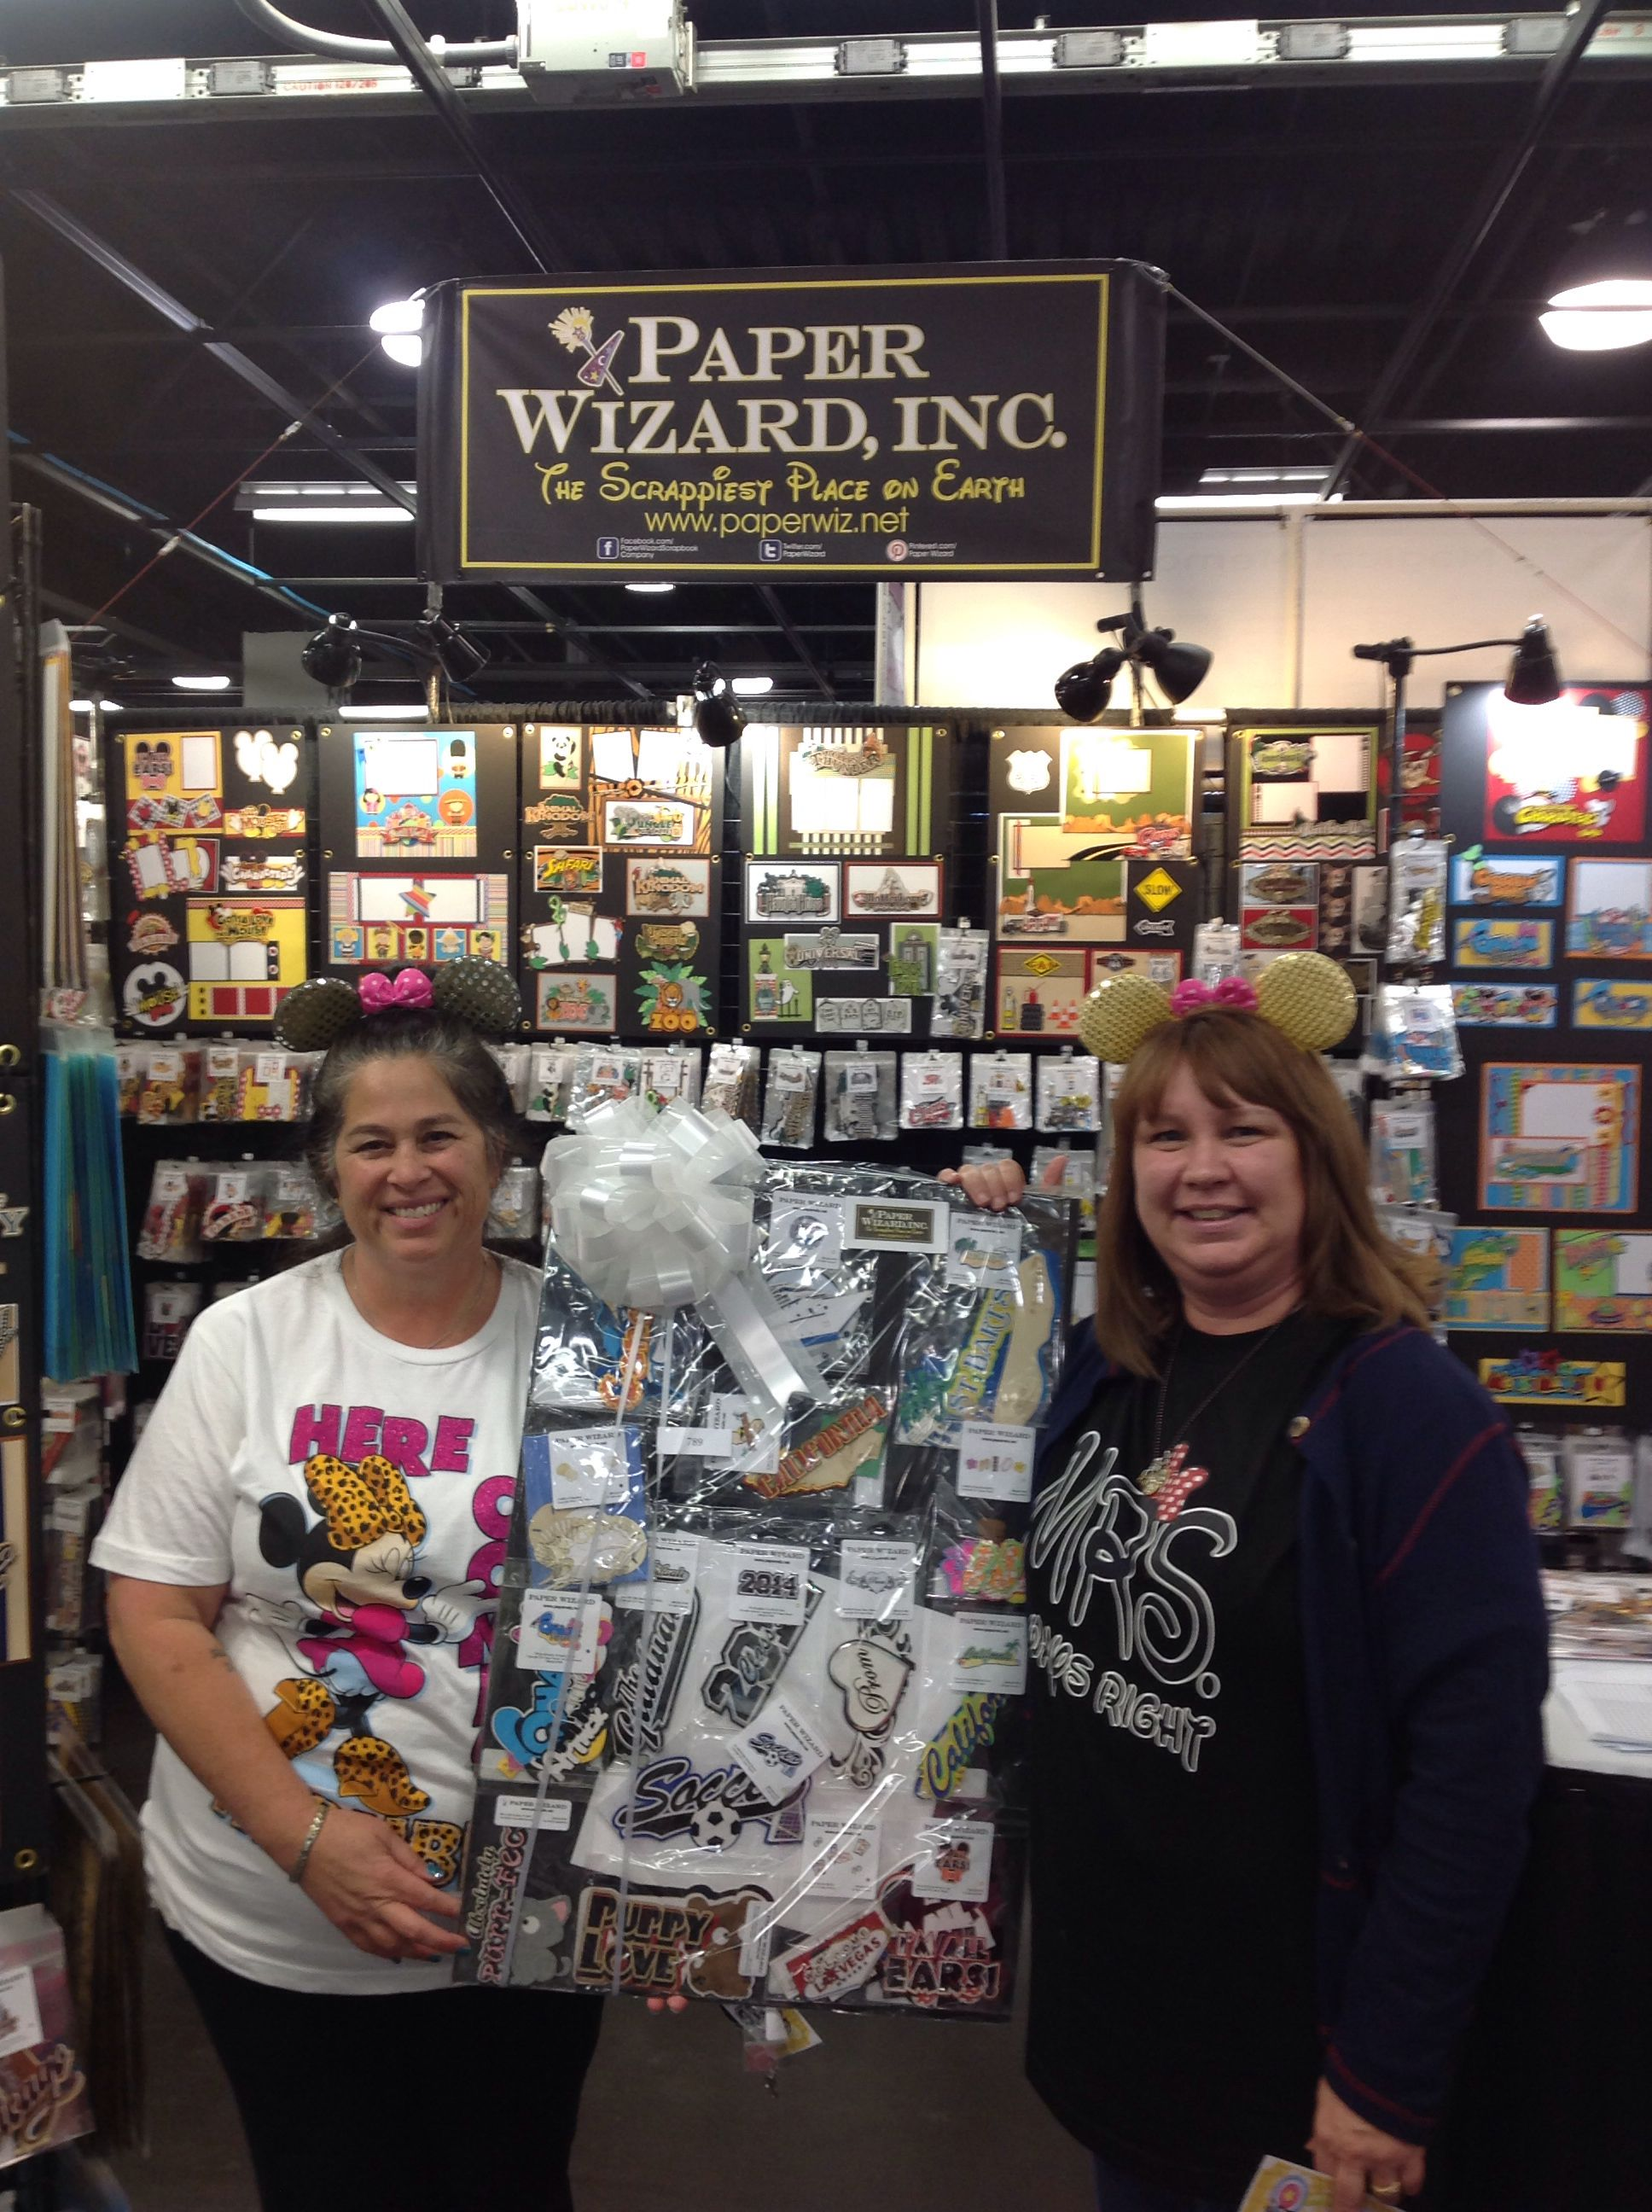 Paper Wizard Prize Winners Dawn Jack And Patsy Ashcroft At The 2014